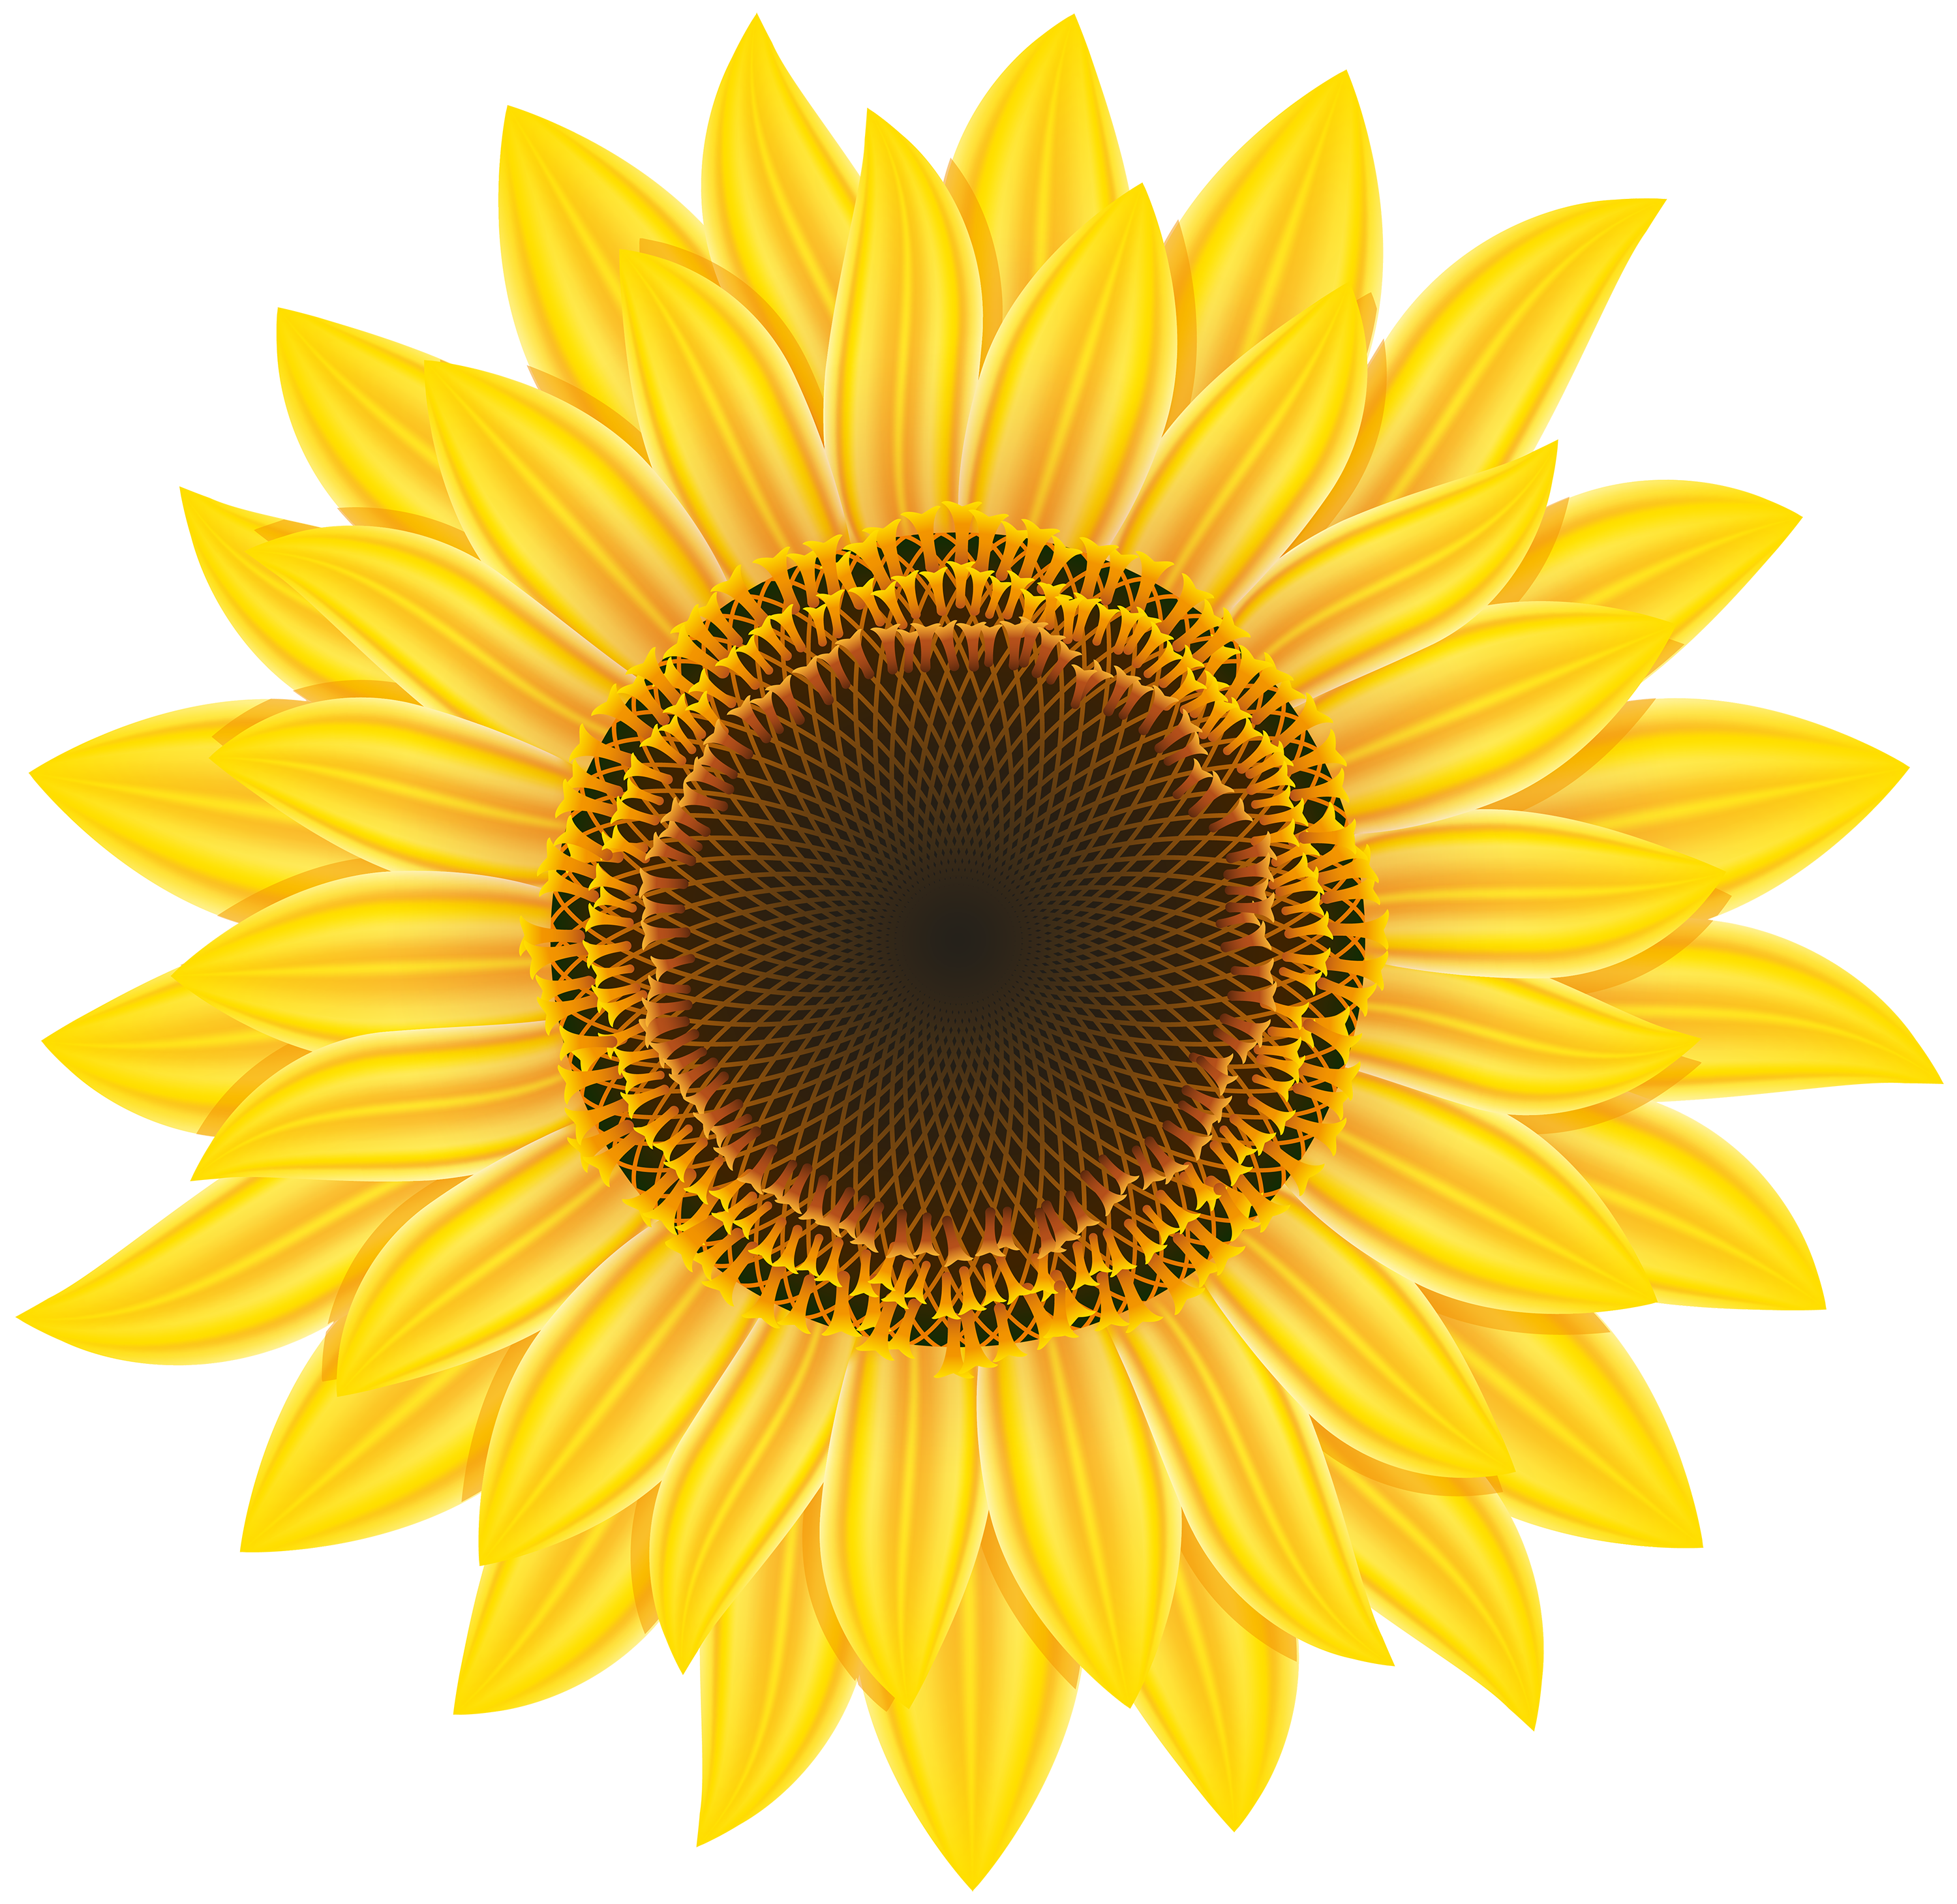 Sunflower clipart Sunflower Sunflower Sunflower Images &